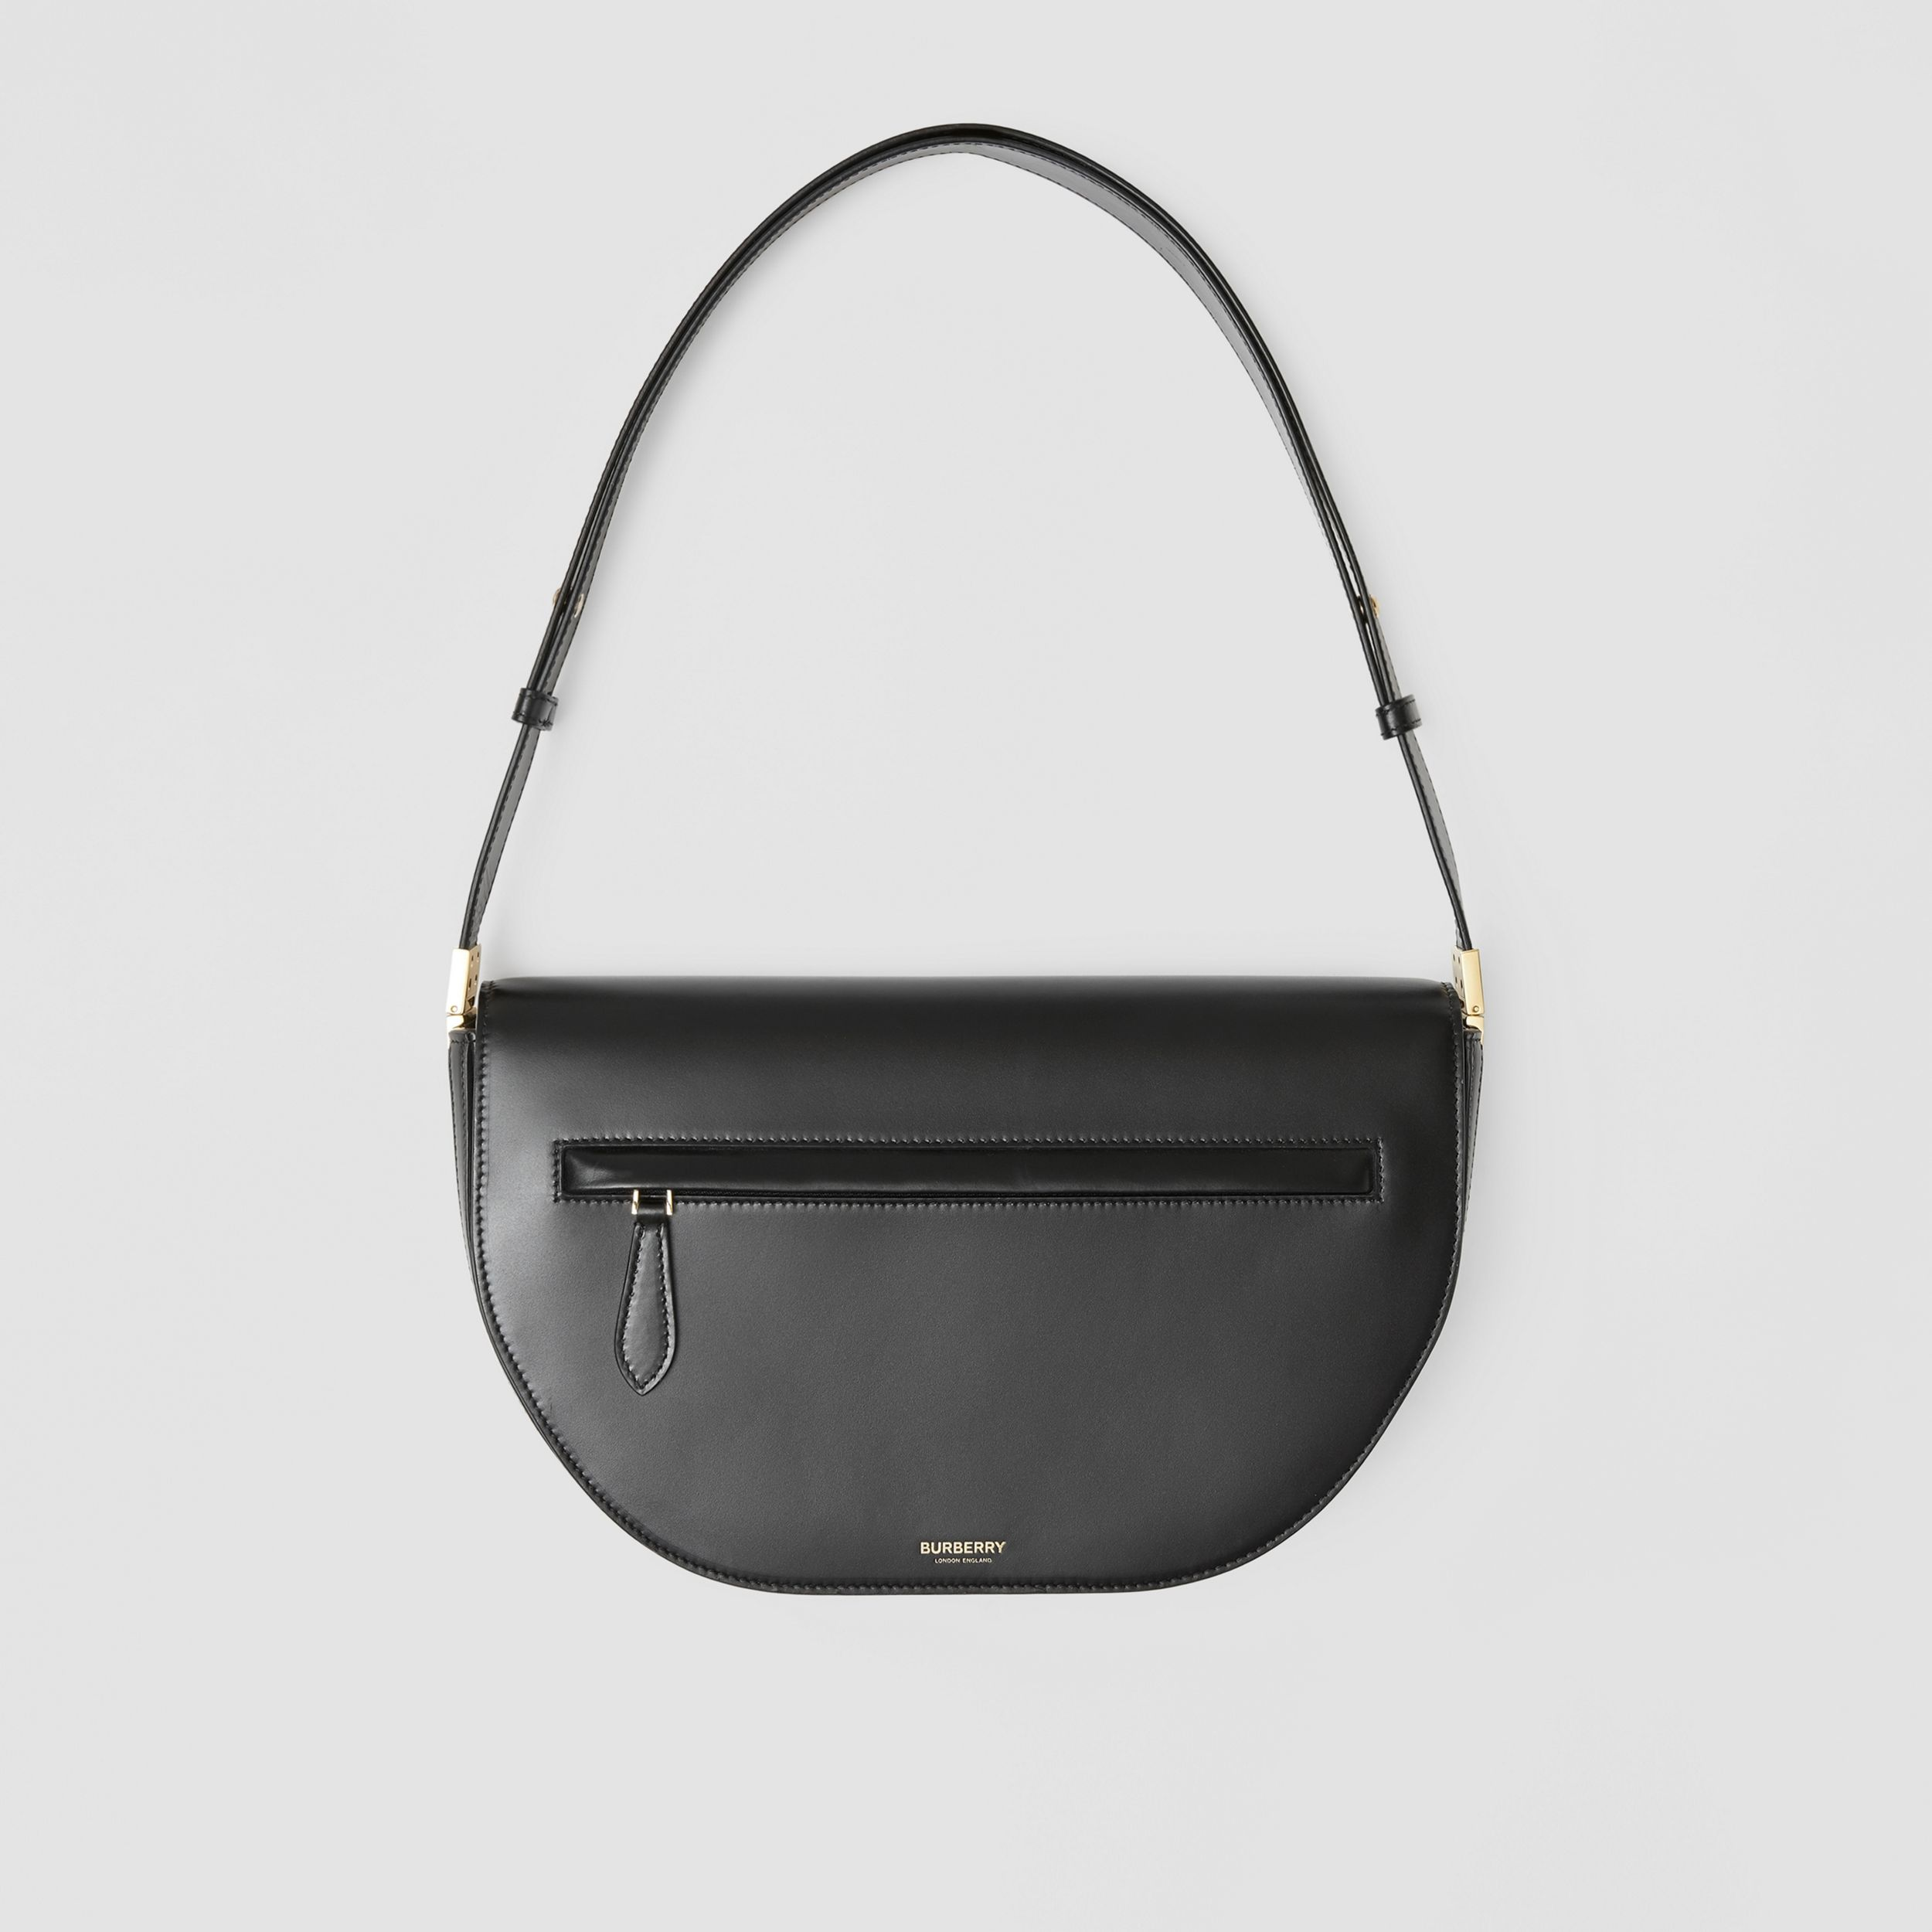 Medium Leather Olympia Bag in Black | Burberry - 1